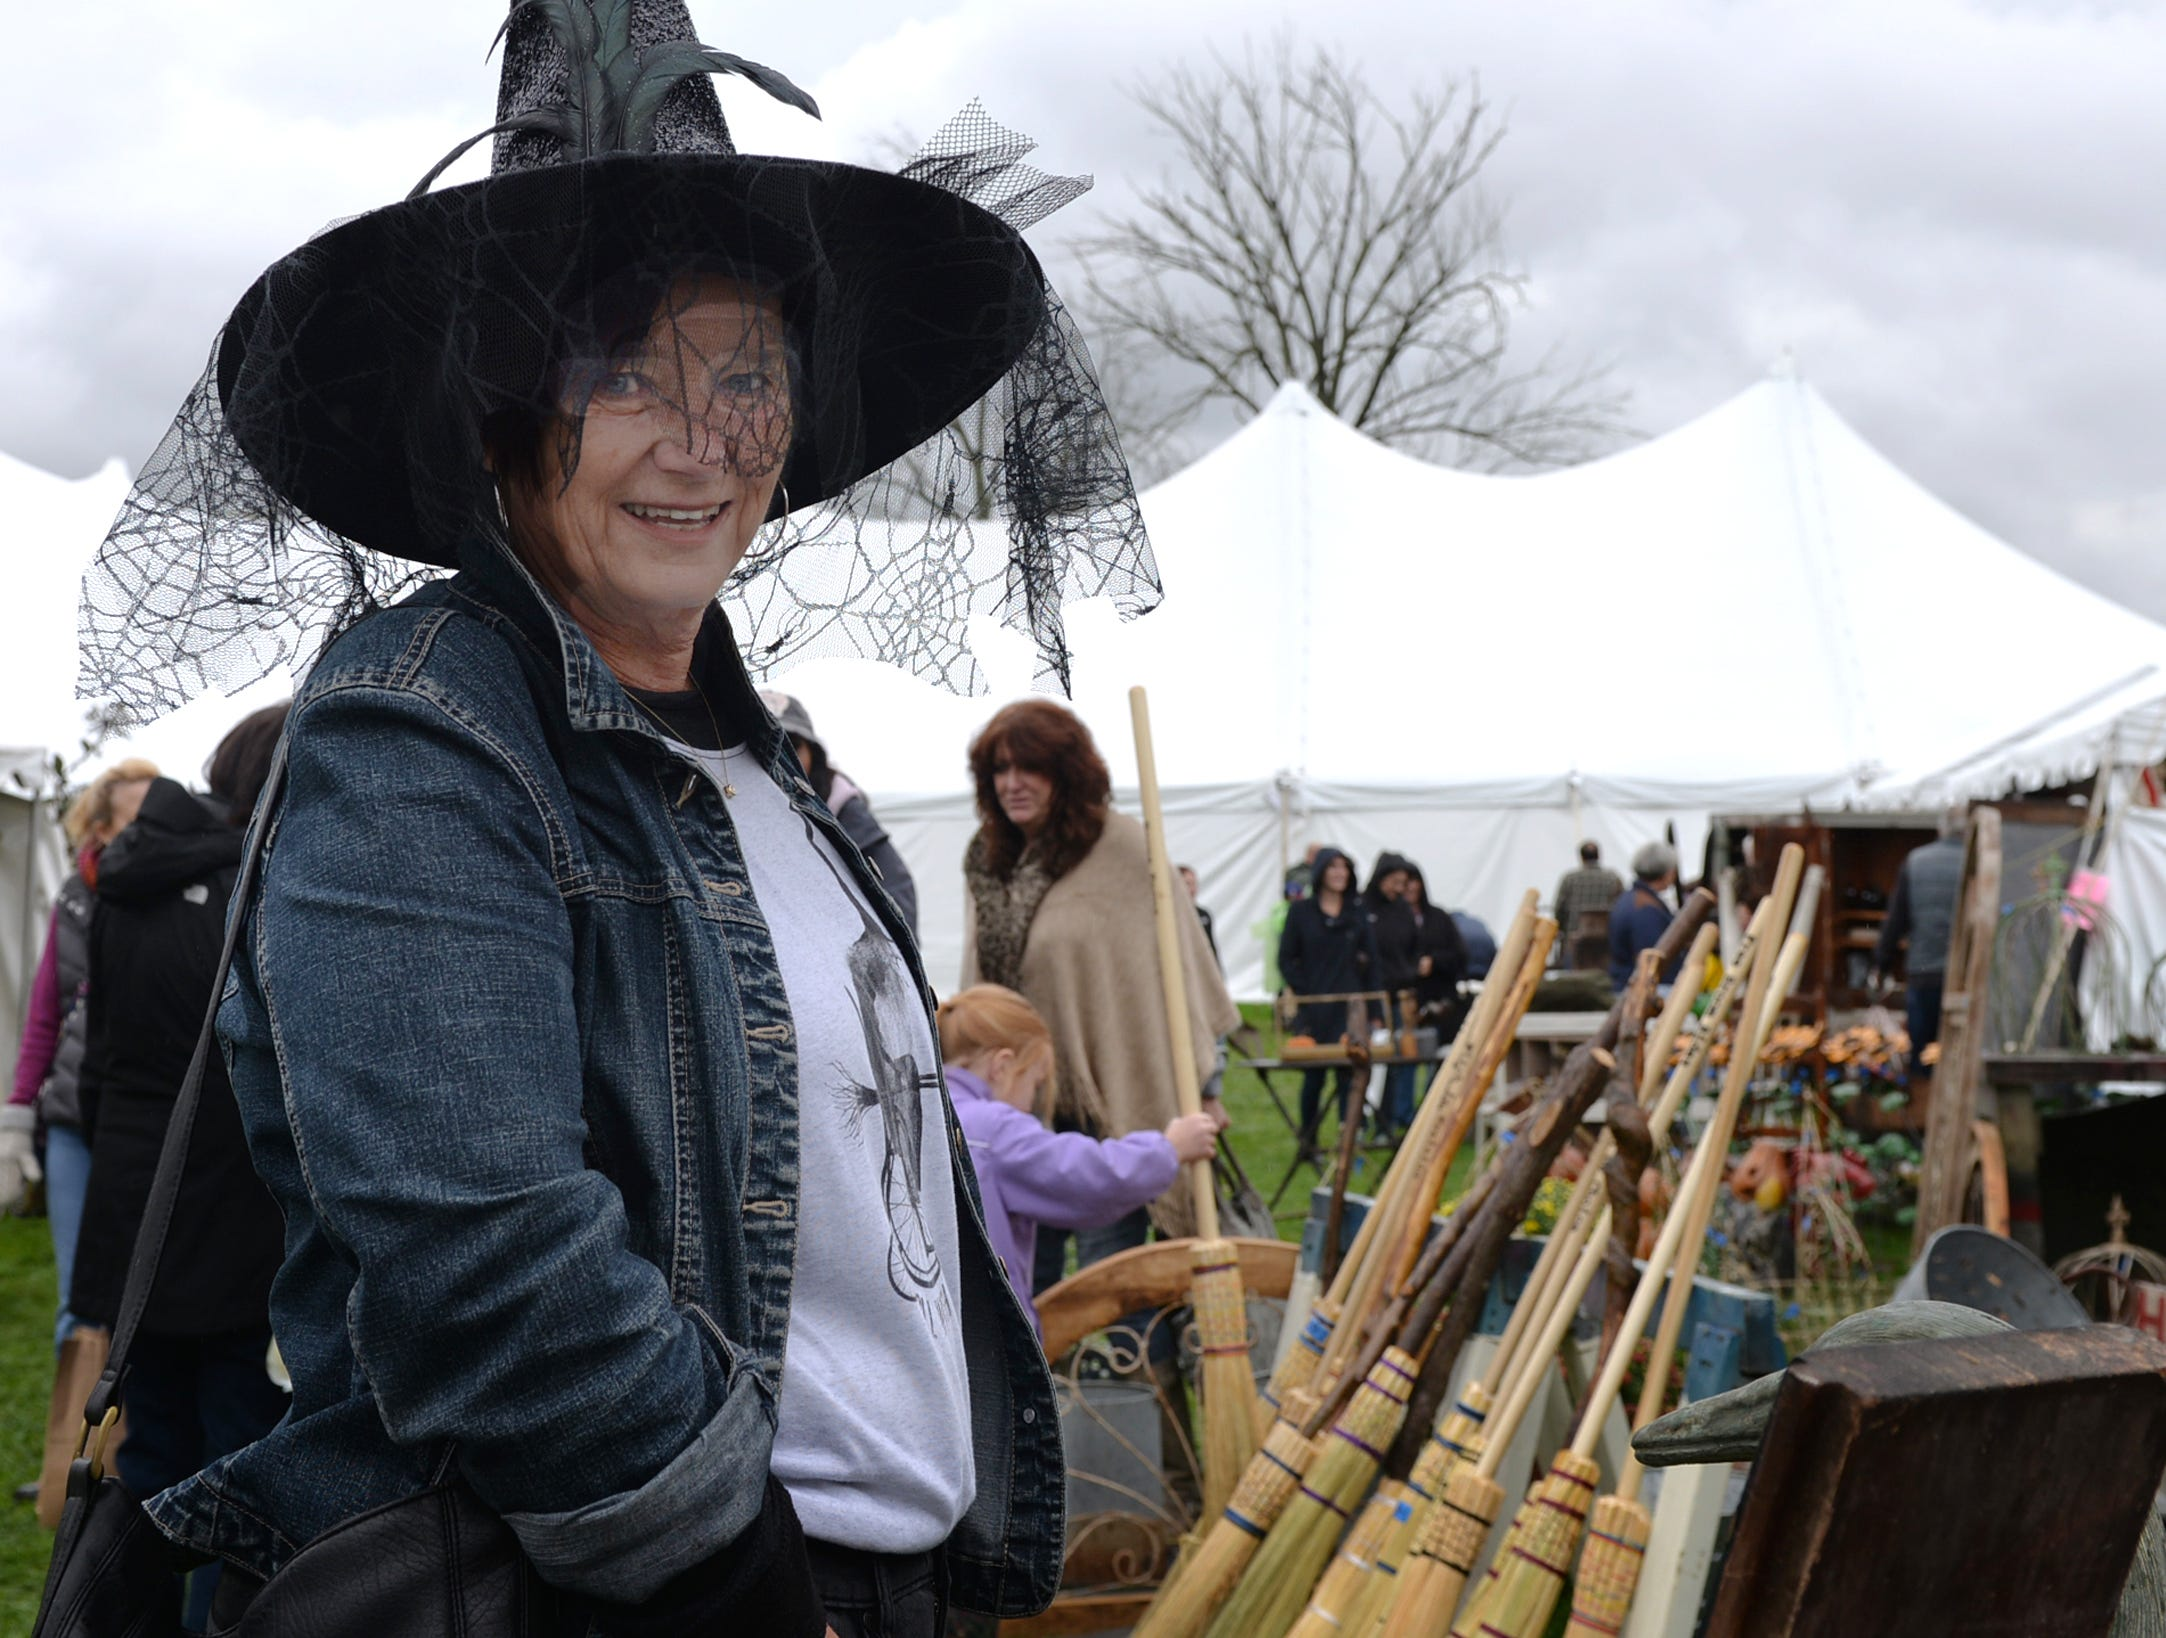 The Witches in Myerstown PA Antique & Artisan Tent Show was held at Tulpehocken Manor in Jackson Township on October 13, 2018.